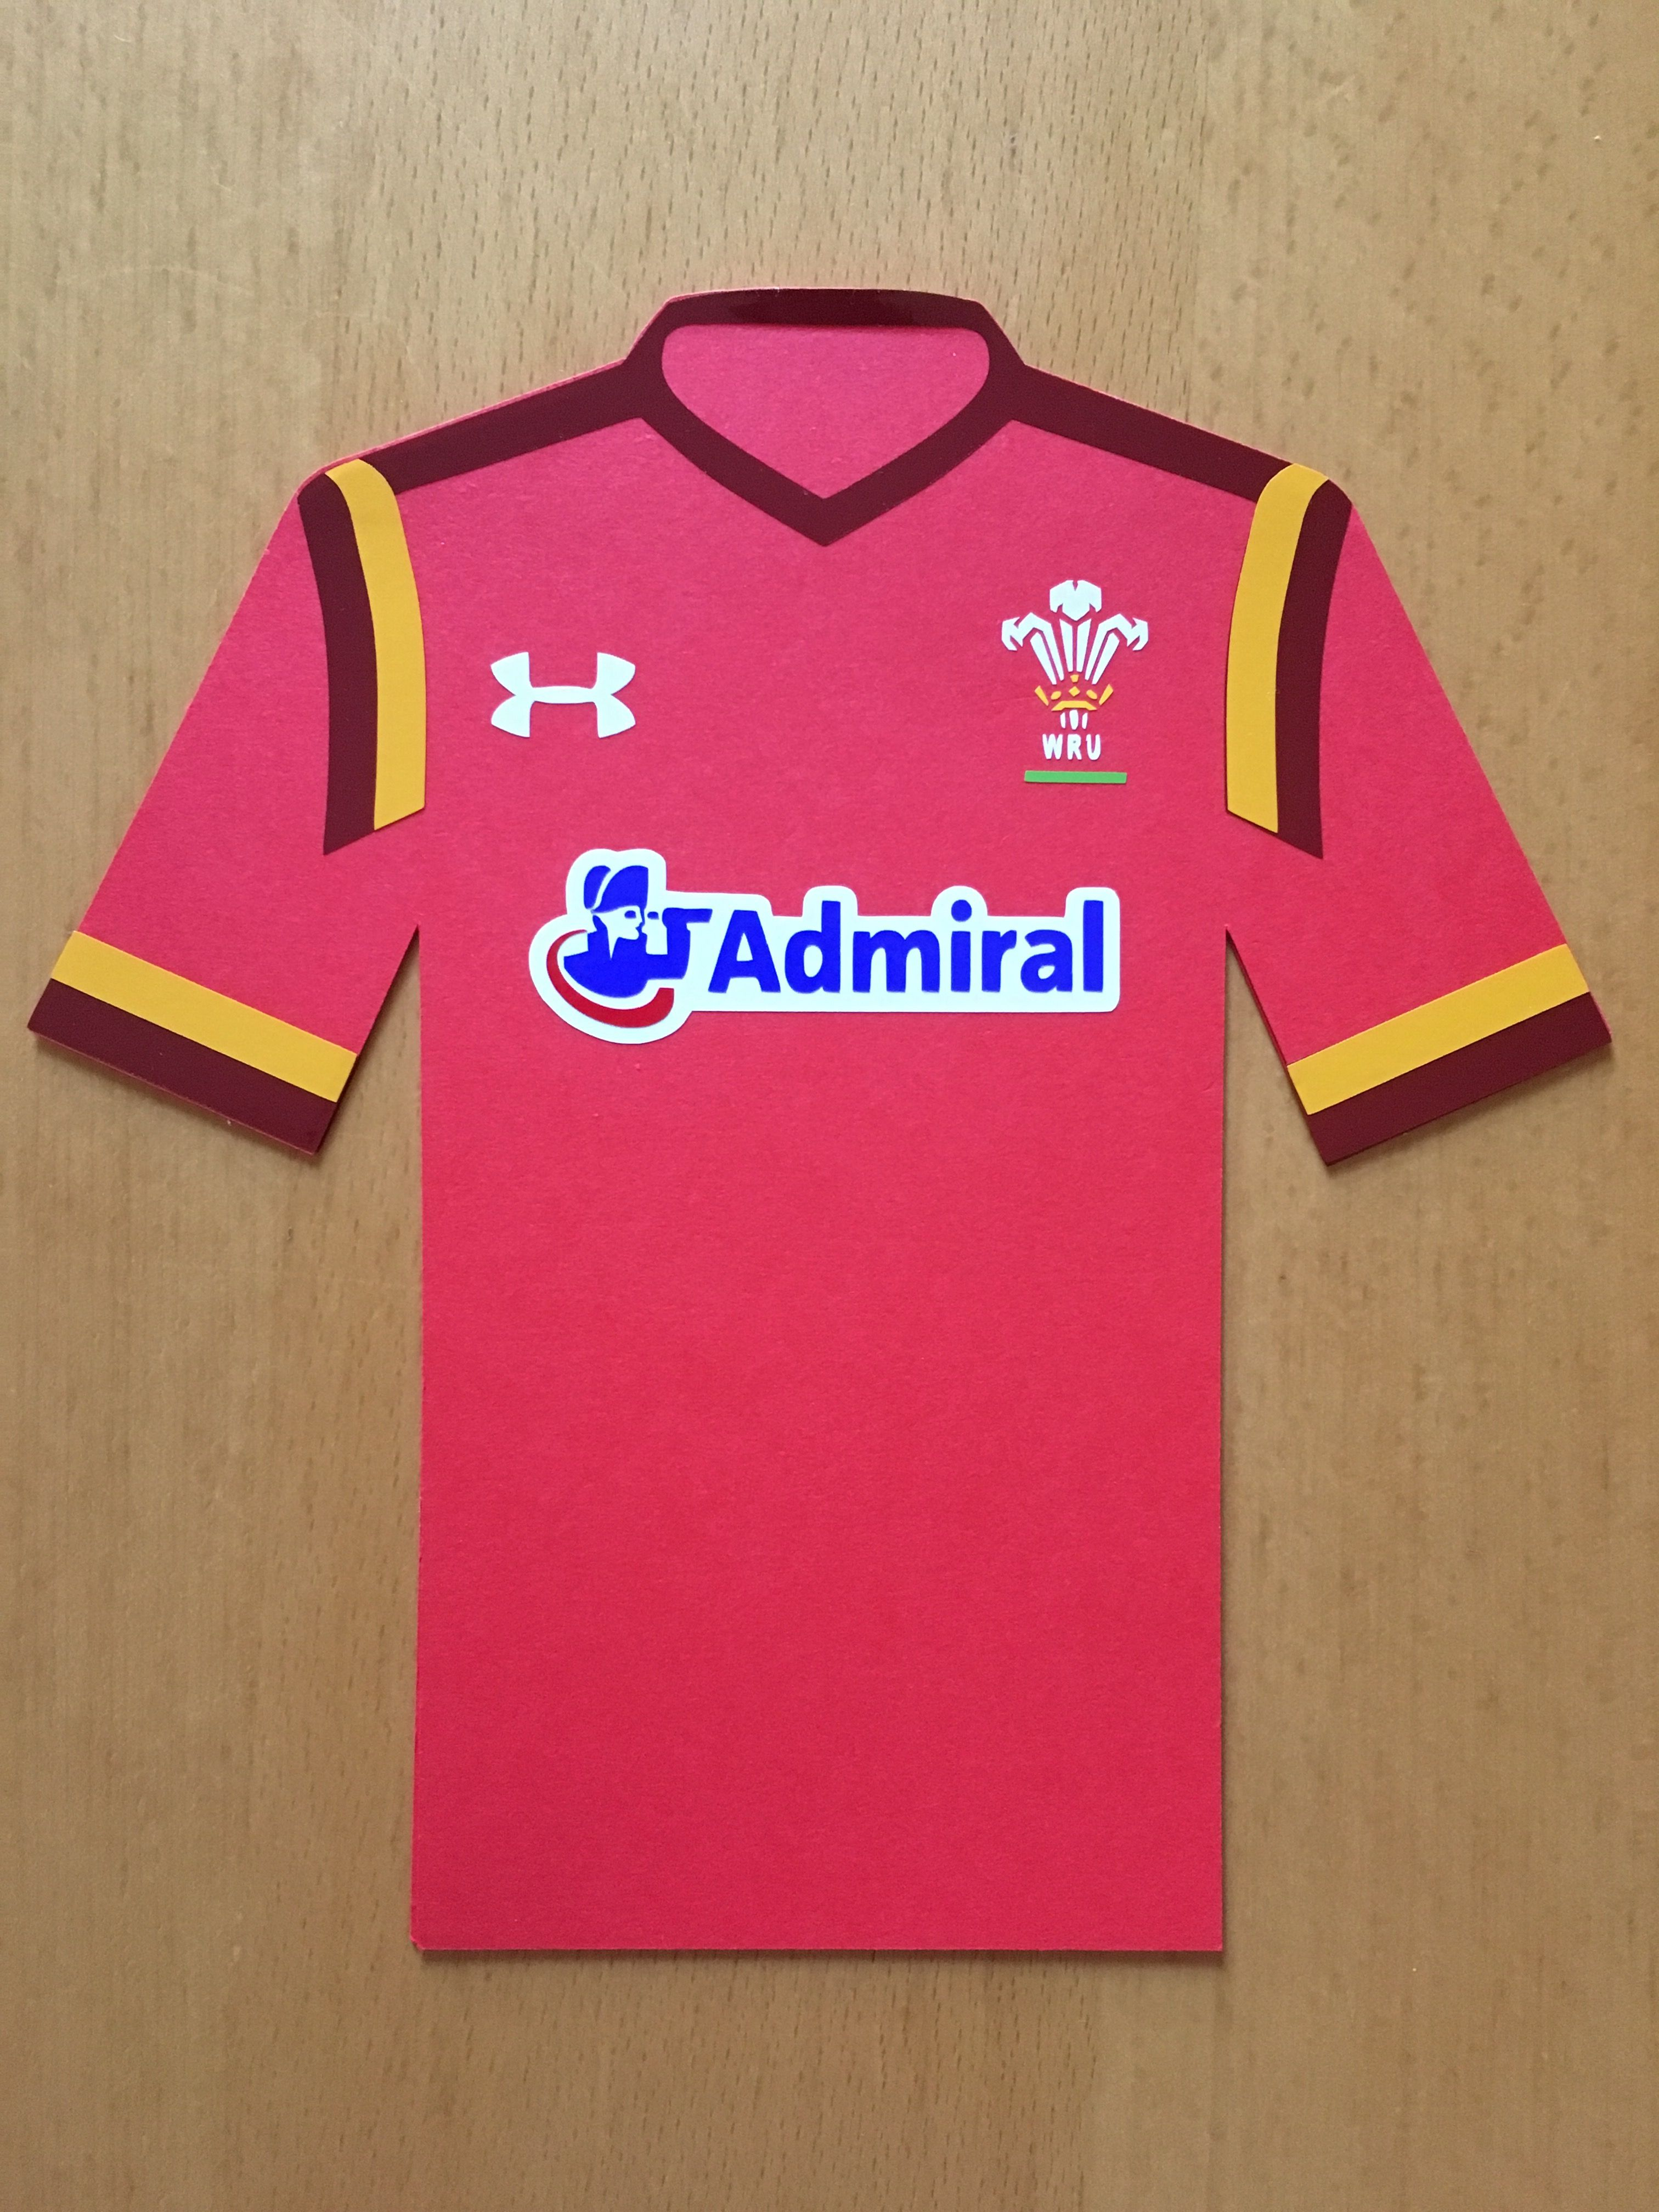 A Wales Rugby Shirt Birthday Card Card Stock And Vinyl Cut Using A